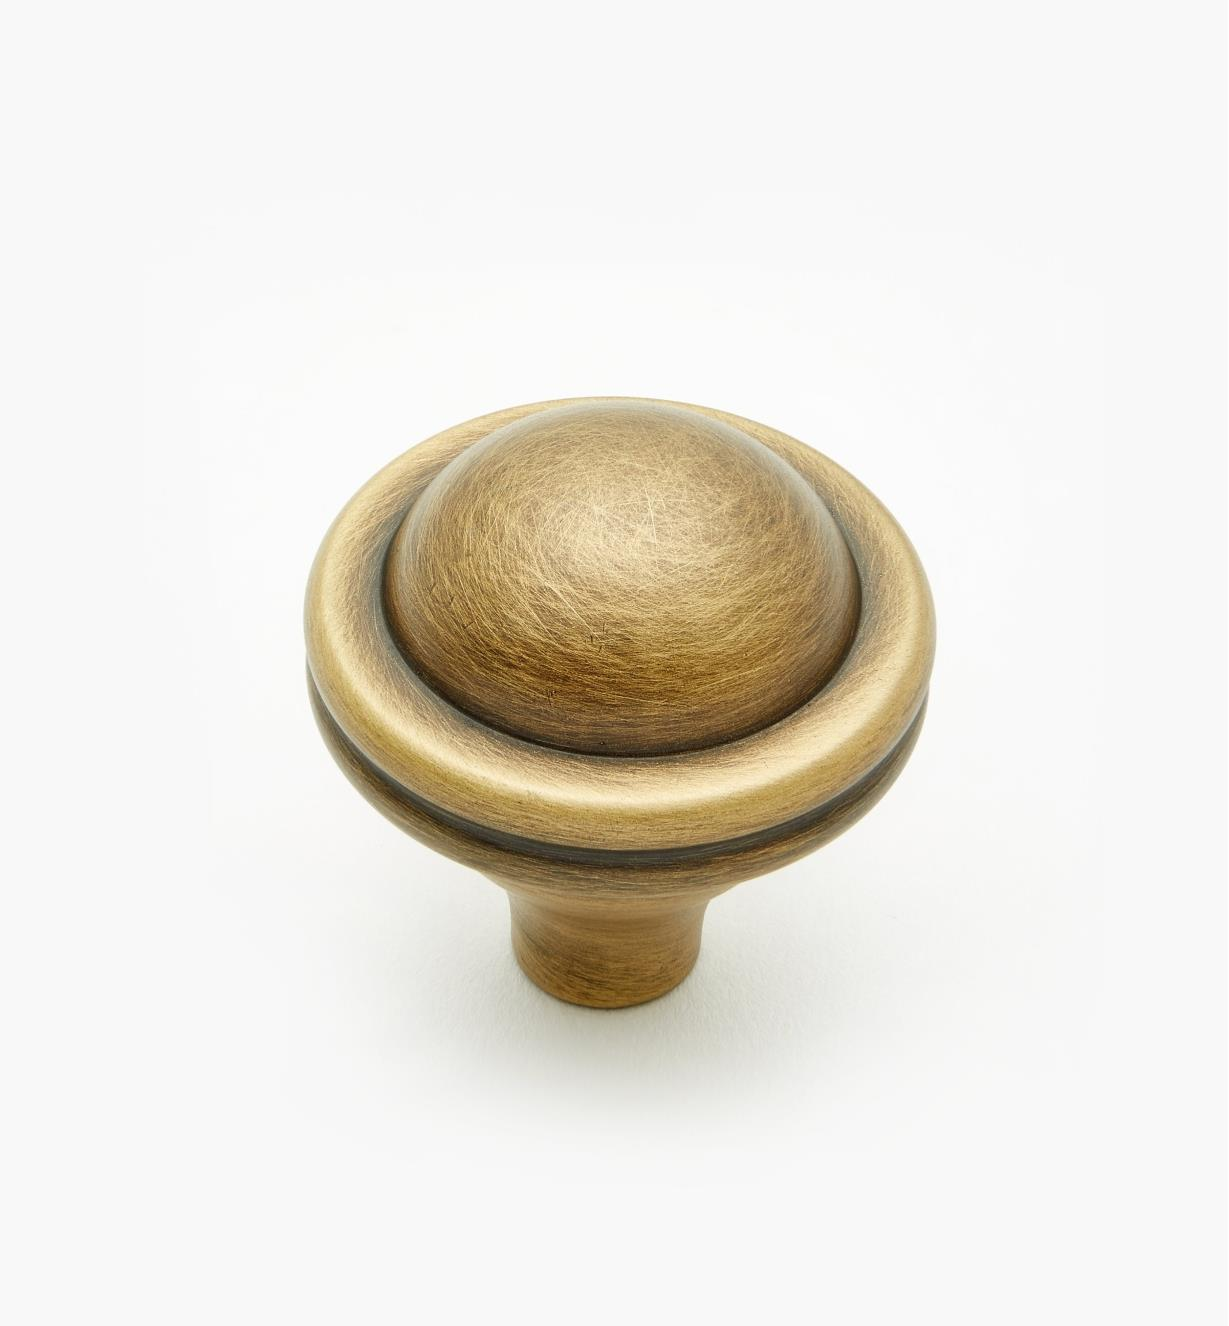 02W4011 - Antique Brass Knob